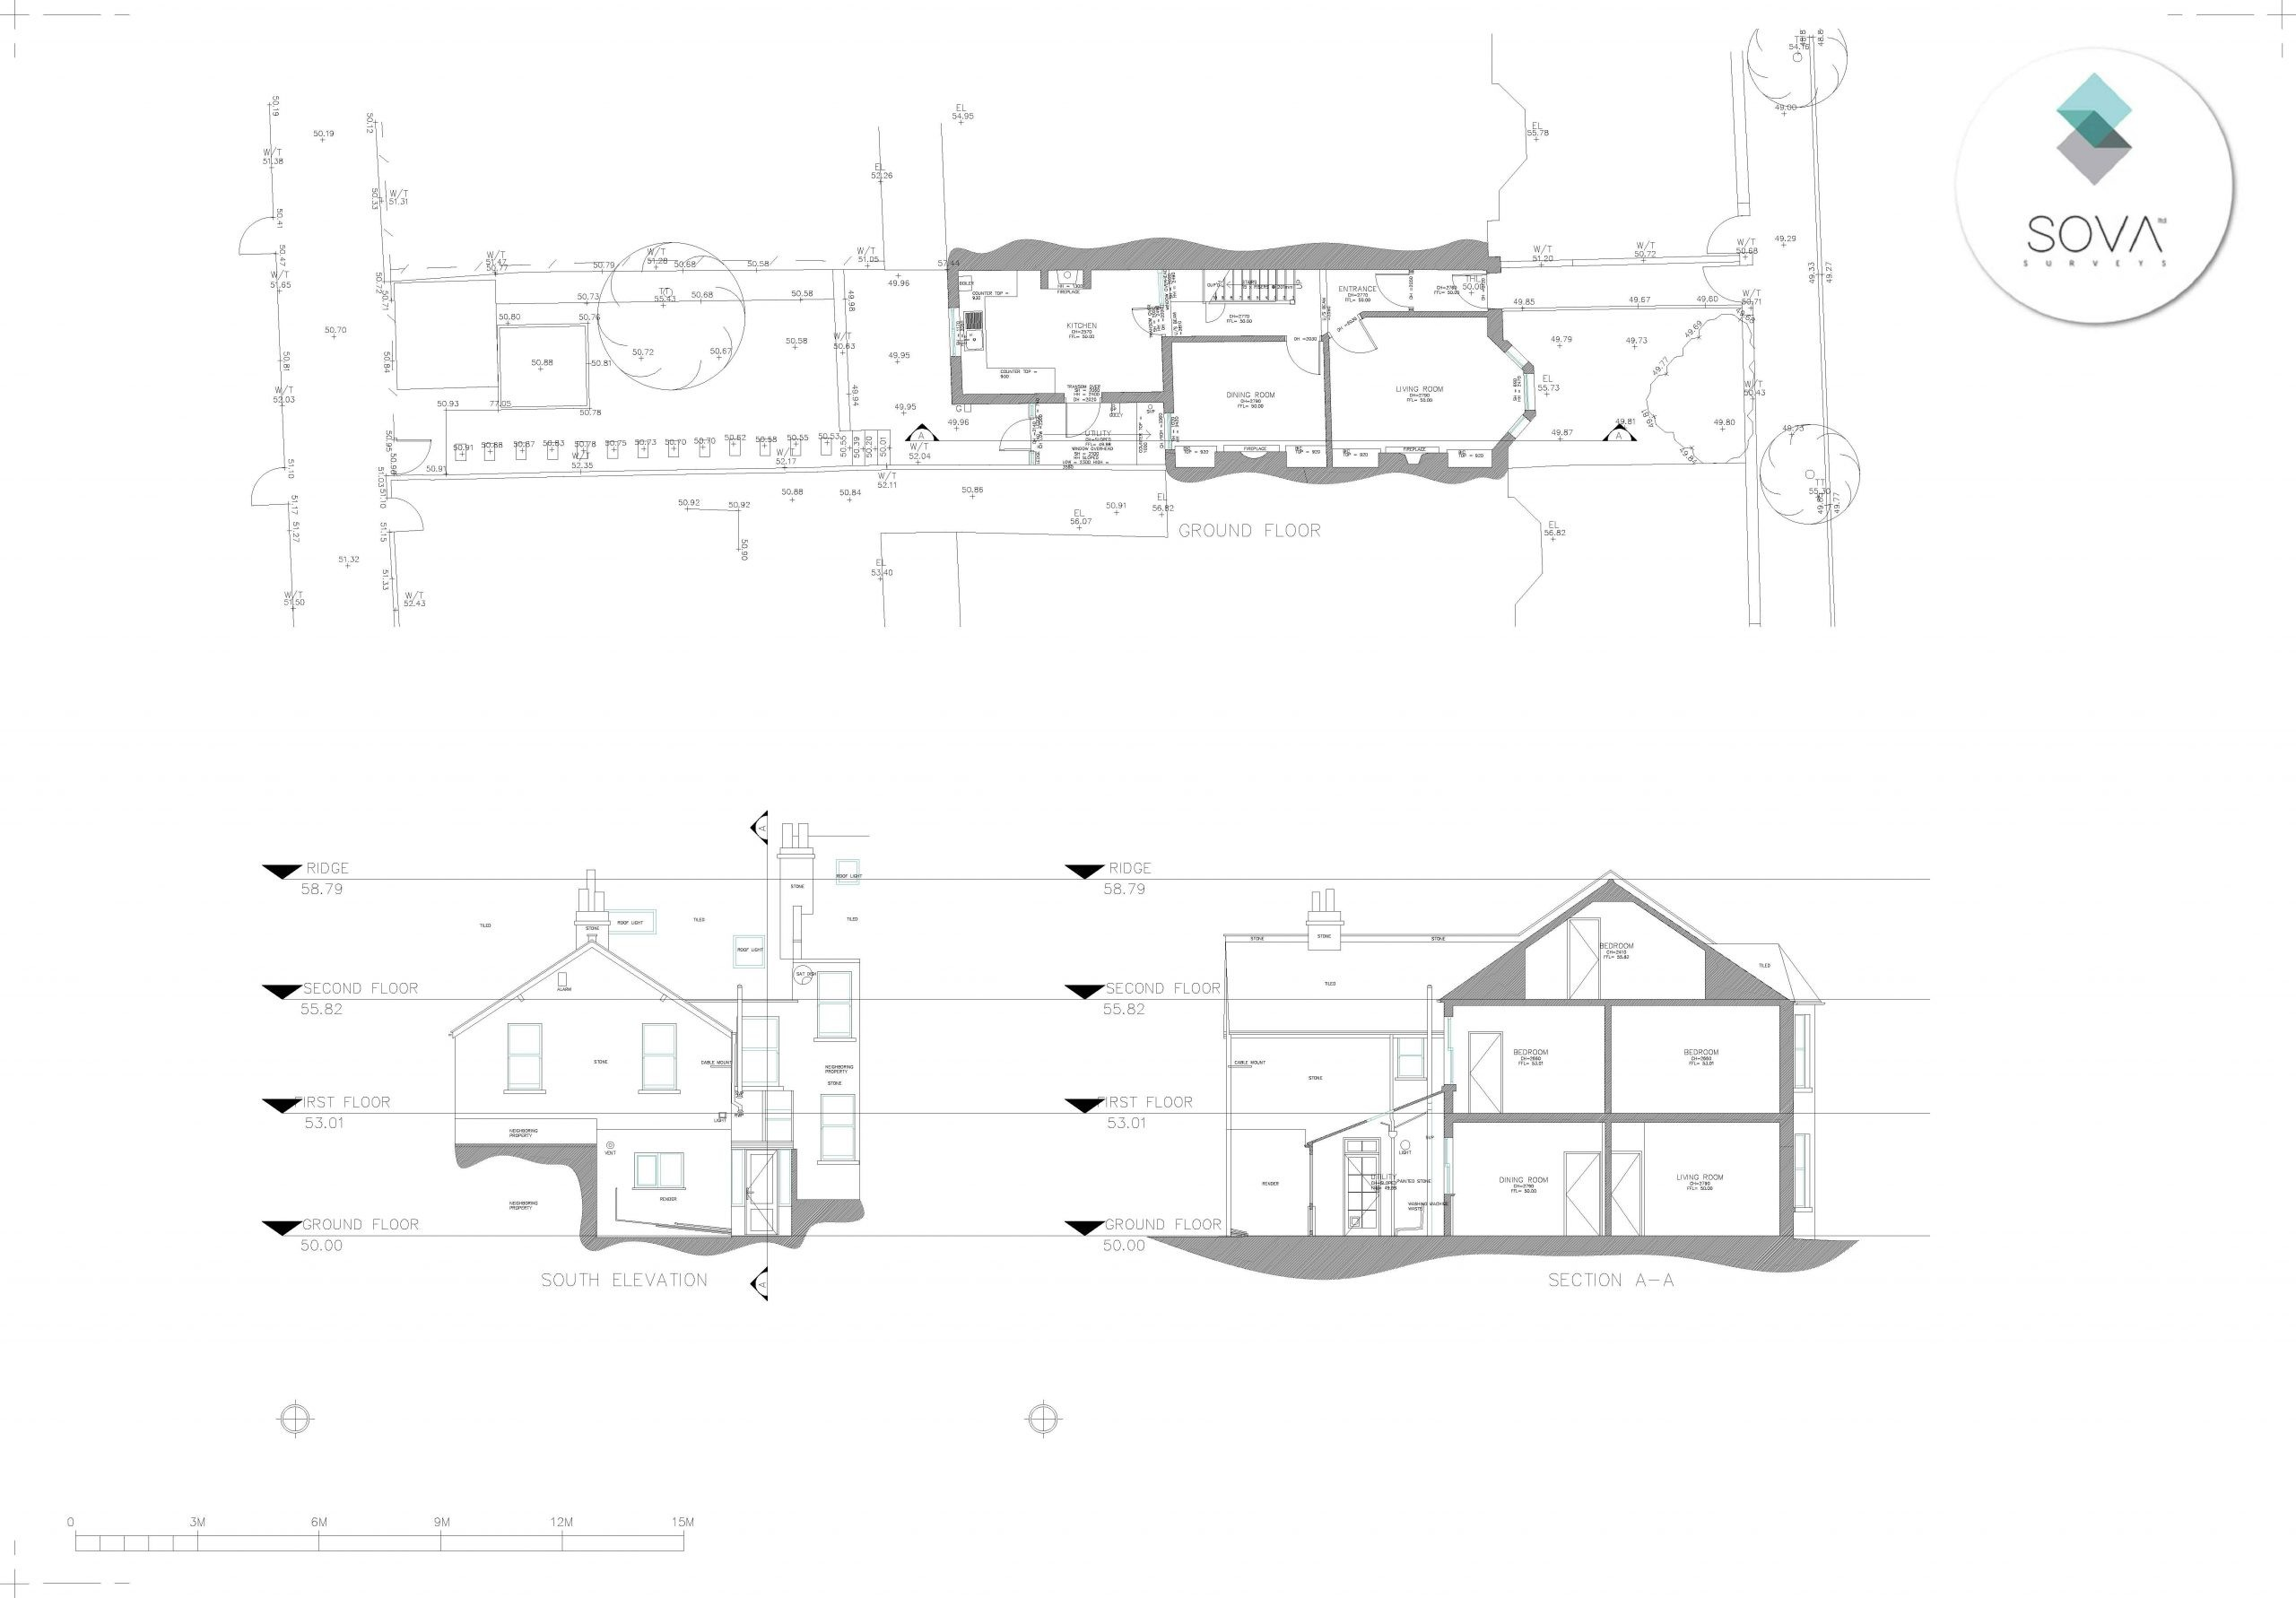 An example of a floor layout from a measured building survey.